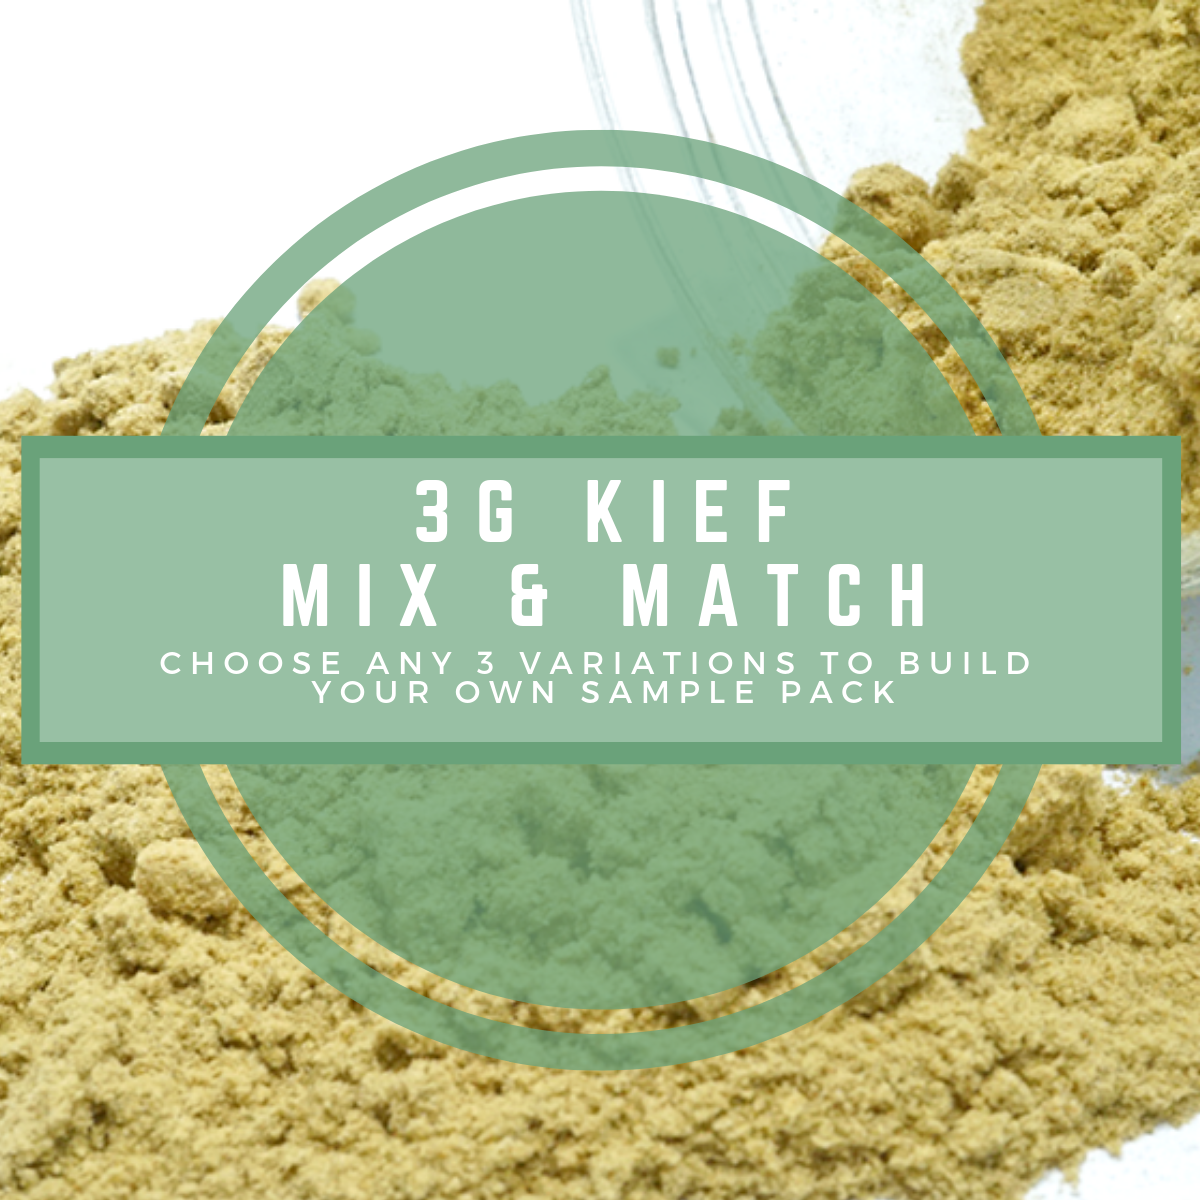 3G Mix & Match Kief by Green Society - Image © 2018 Green Society. All Rights Reserved.